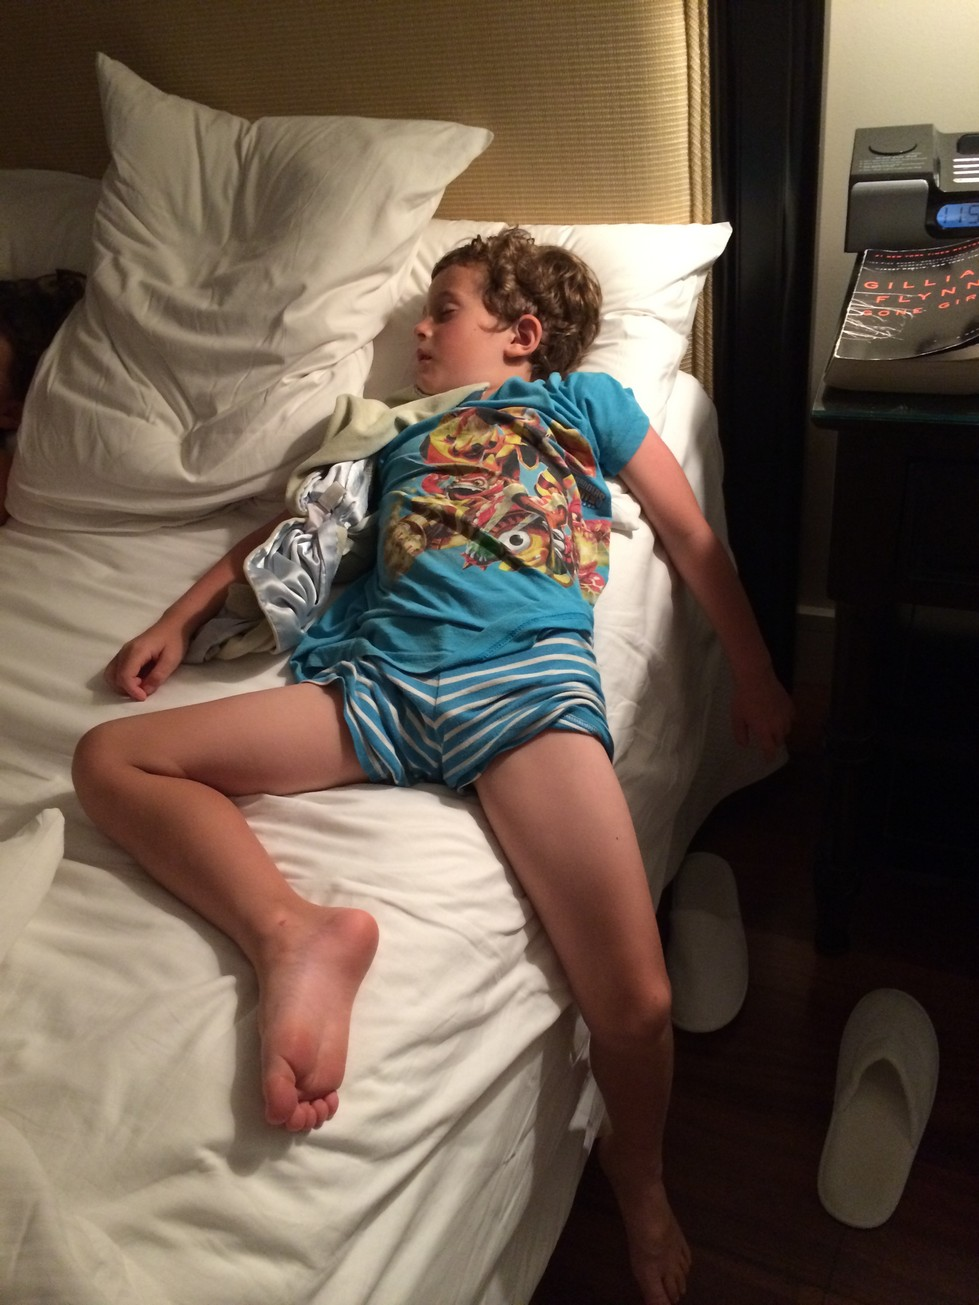 Sometimes vacation is exhausting.